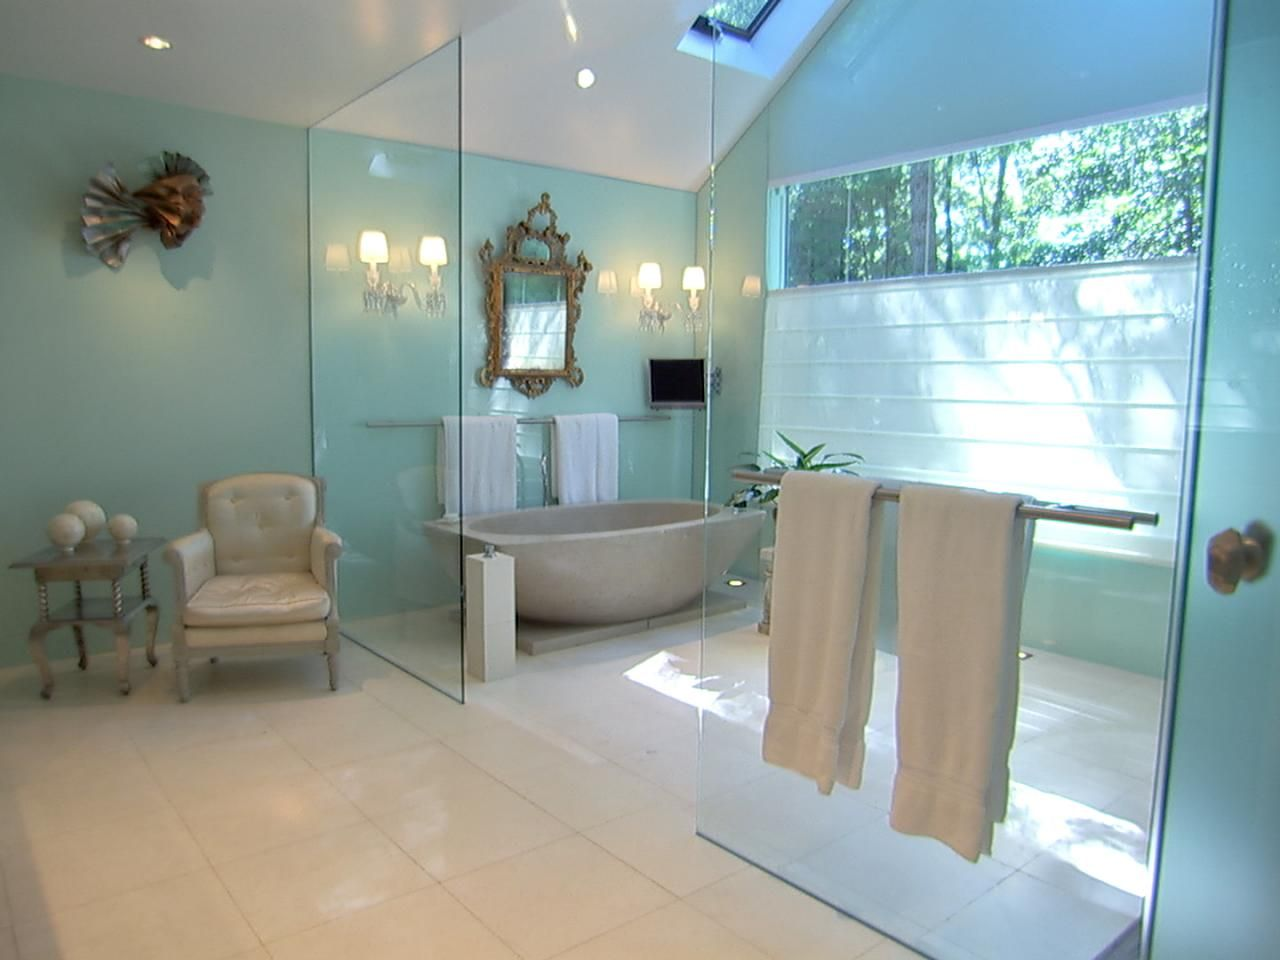 50 Best Wet Room Design Ideas Pinterest Teal Wet rooms and Room